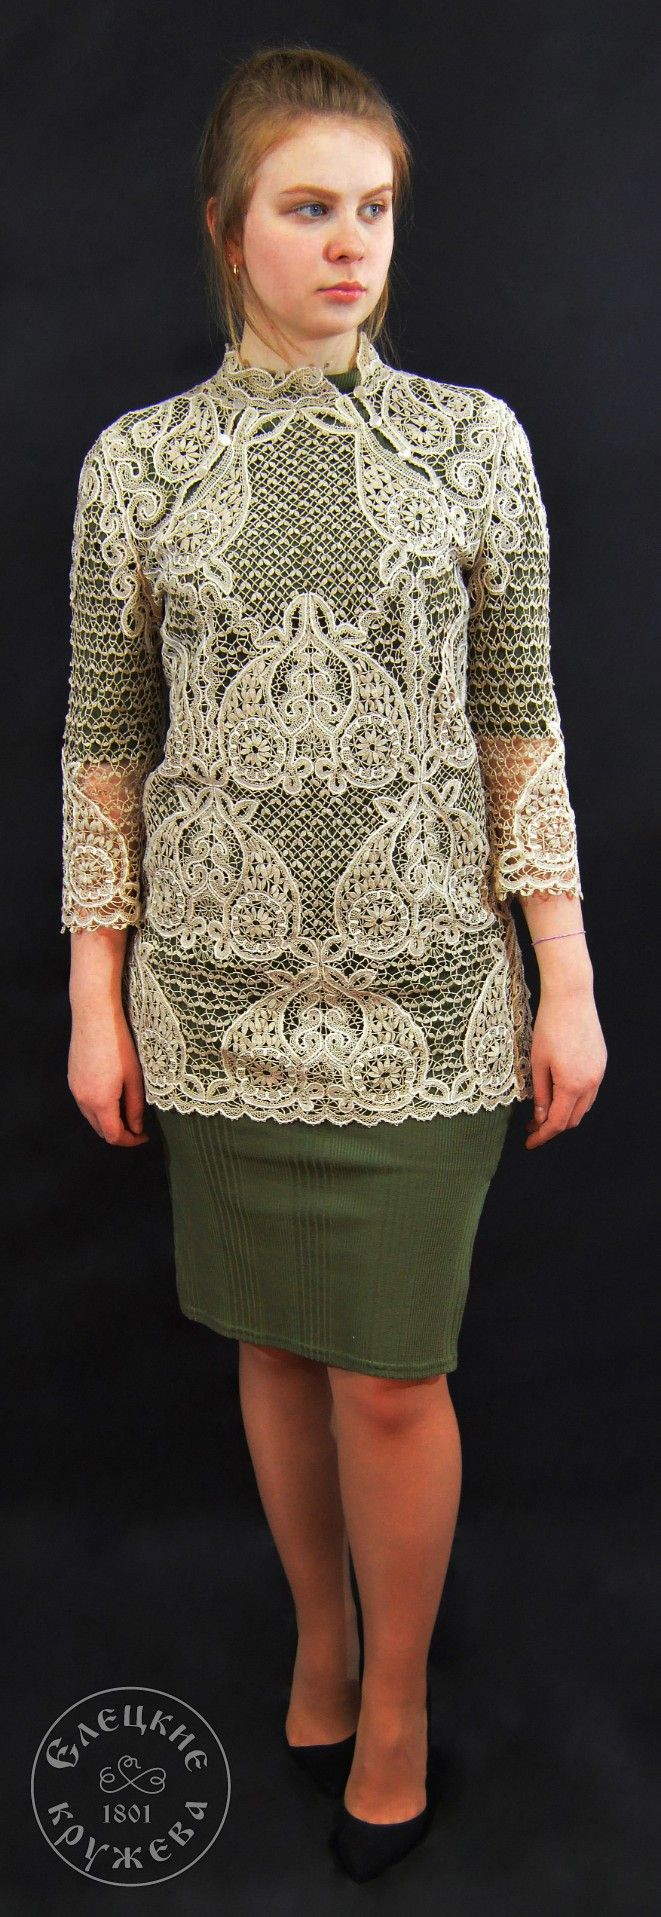 Yelets lace / Women's lace tunic С1889